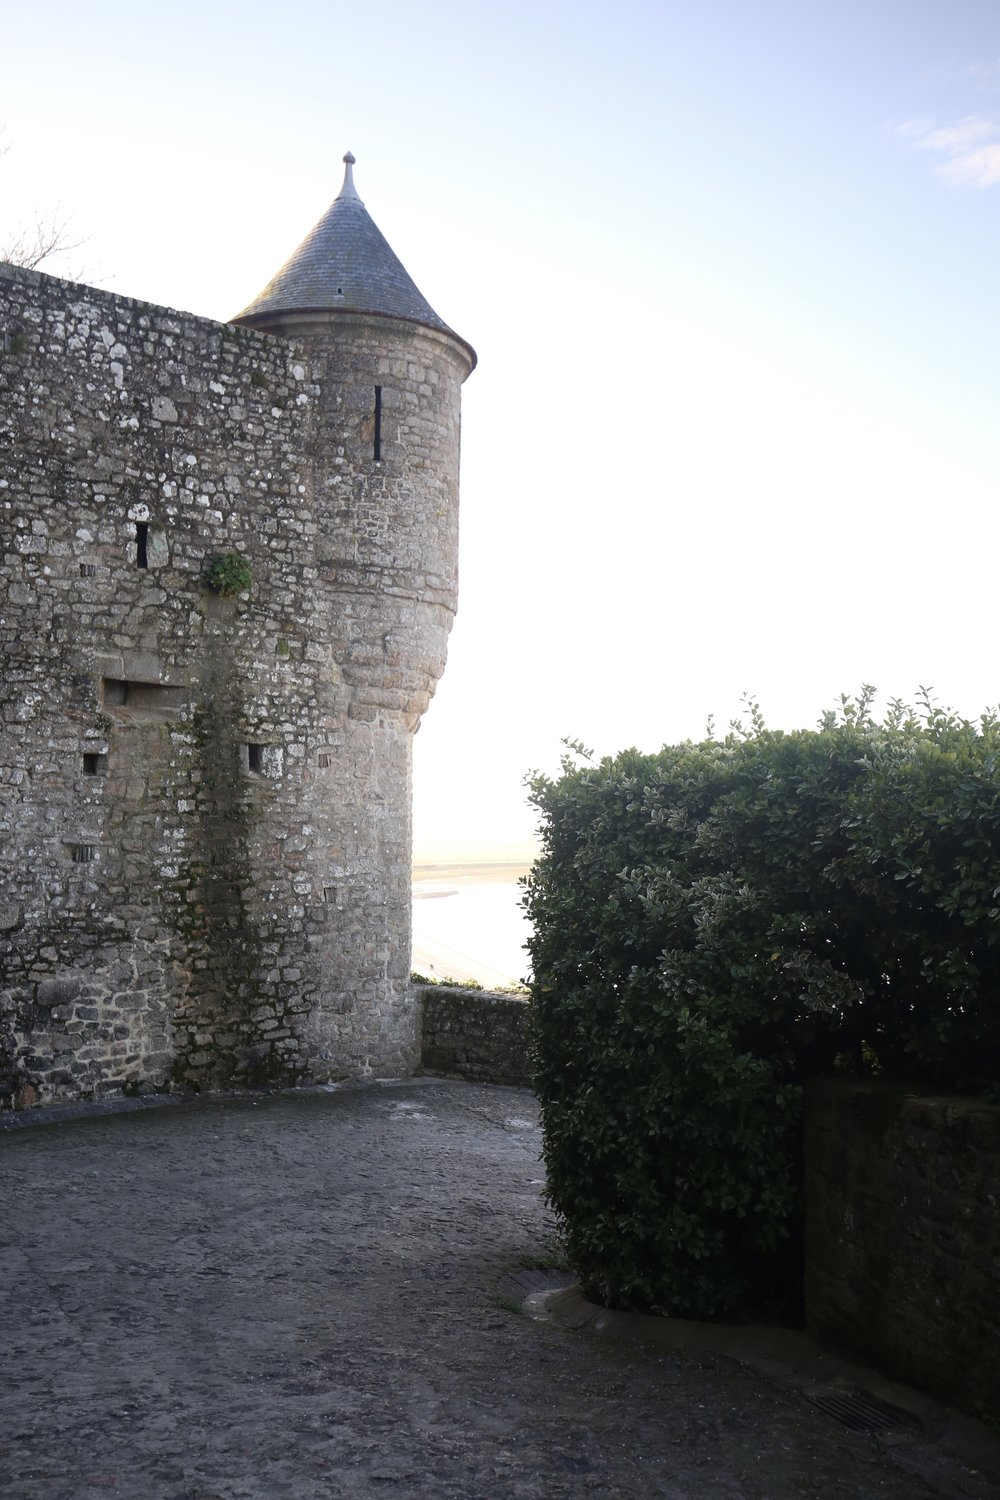 Stone castle turrets and hedges on the medieval island of Mont St Michel